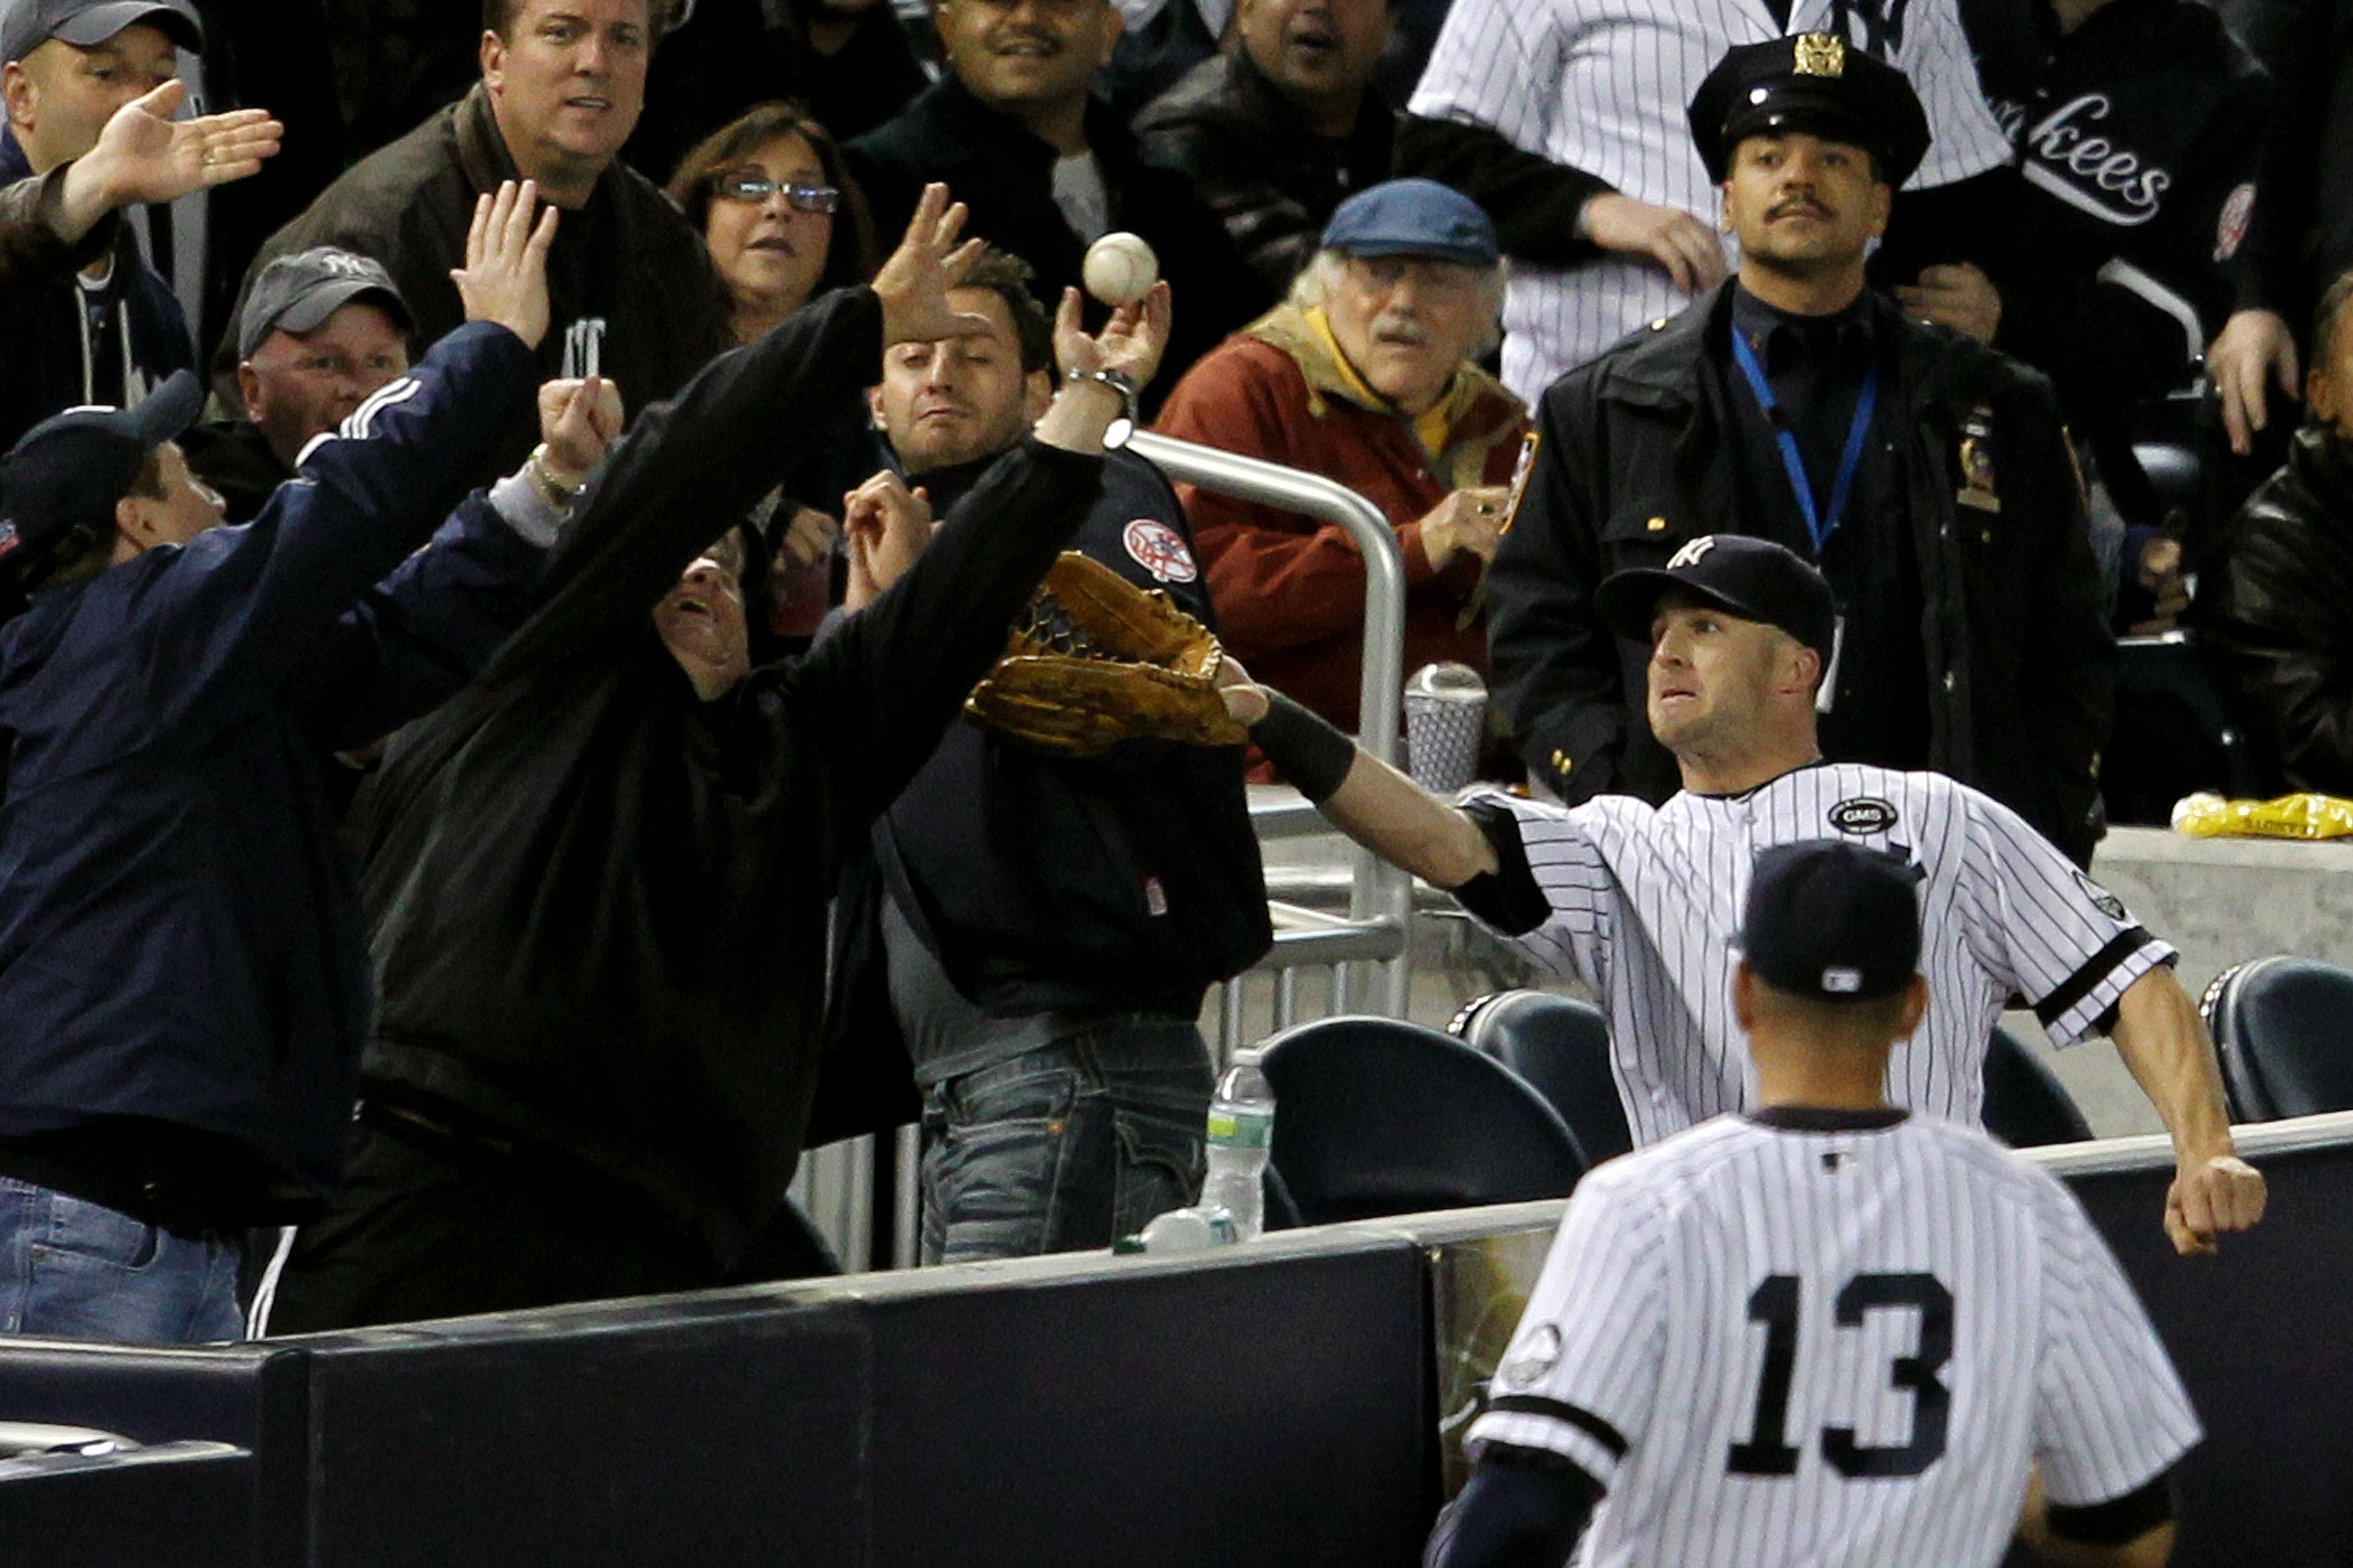 NEW YORK - OCTOBER 19:  Brett Gardner #11 of the New York Yankees tries to make a play in foul territory as a fan gets in the way against the Texas Rangers in Game Four of the ALCS during the 2010 MLB Playoffs at Yankee Stadium on October 19, 2010 in the